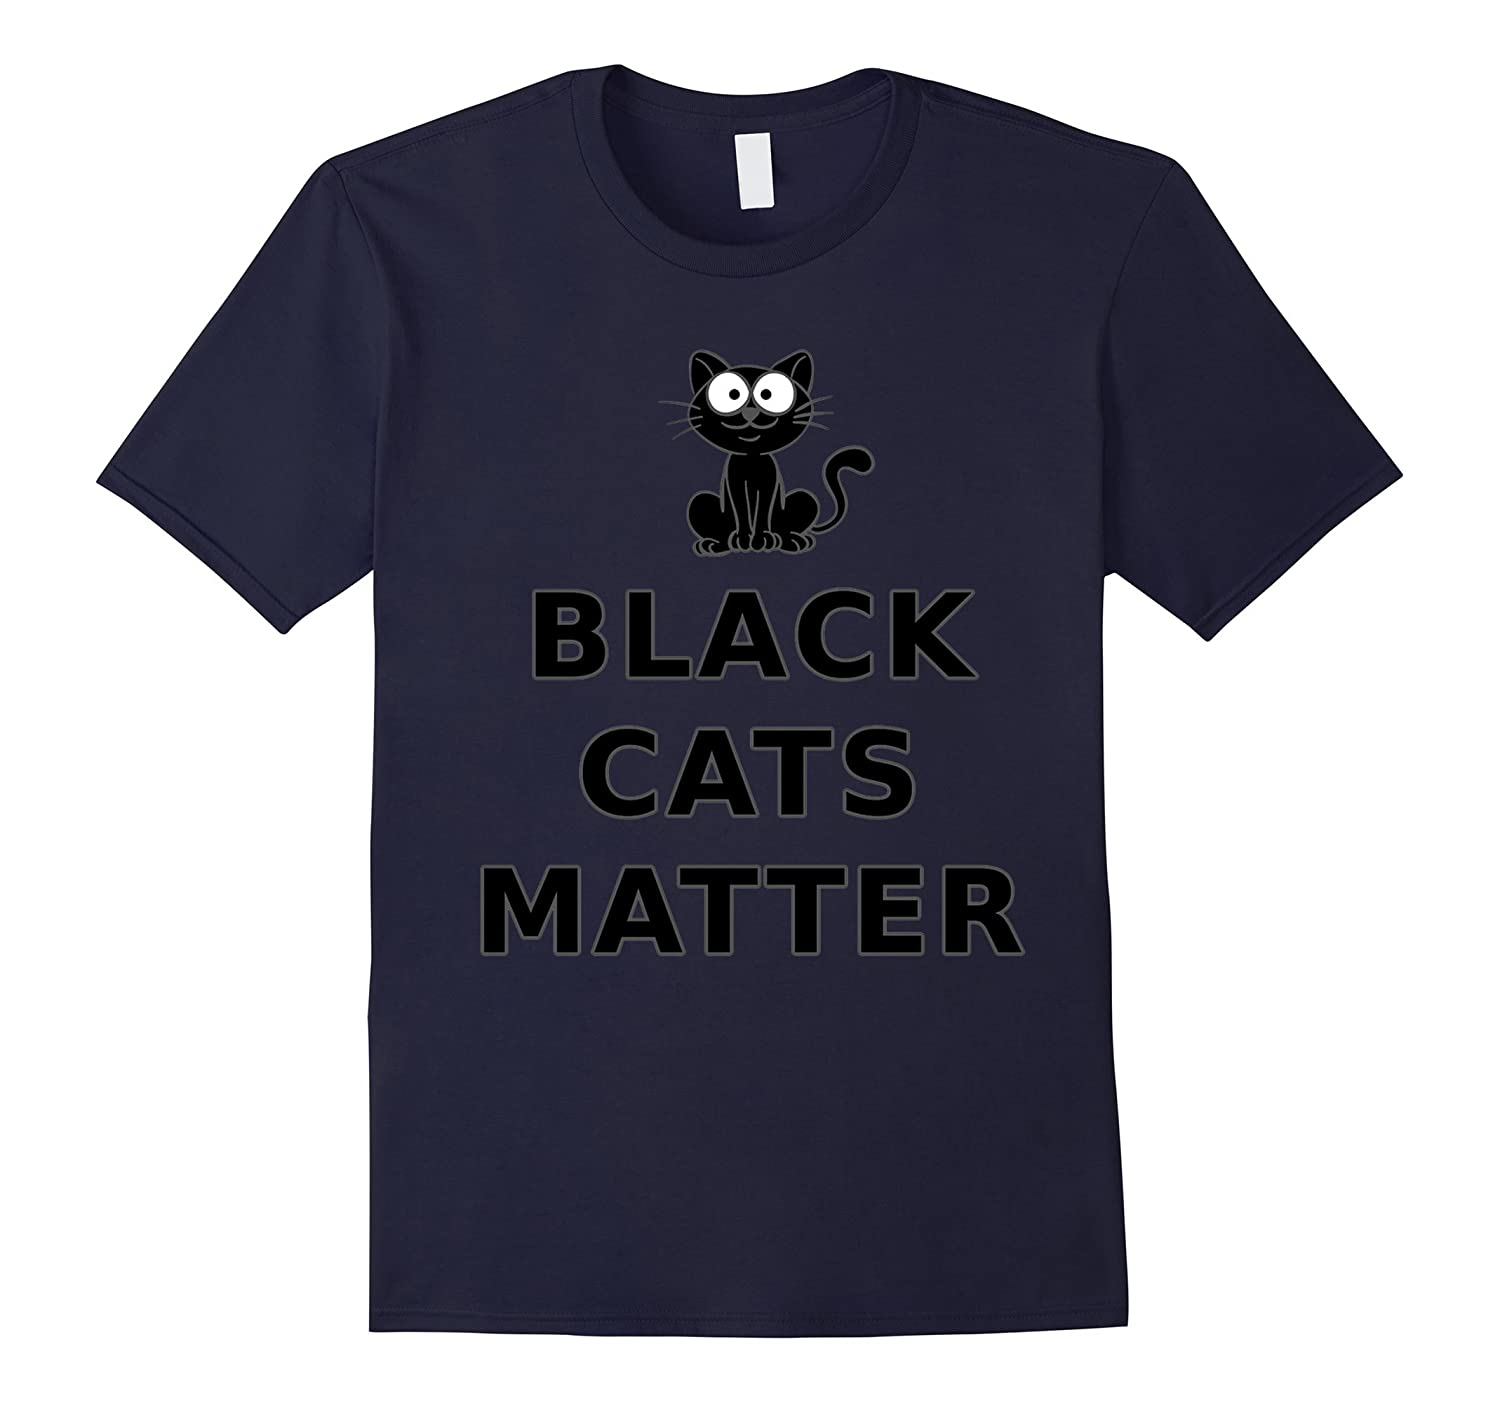 Black Cats Matter Funny T-Shirt For men Women and Kids-CD